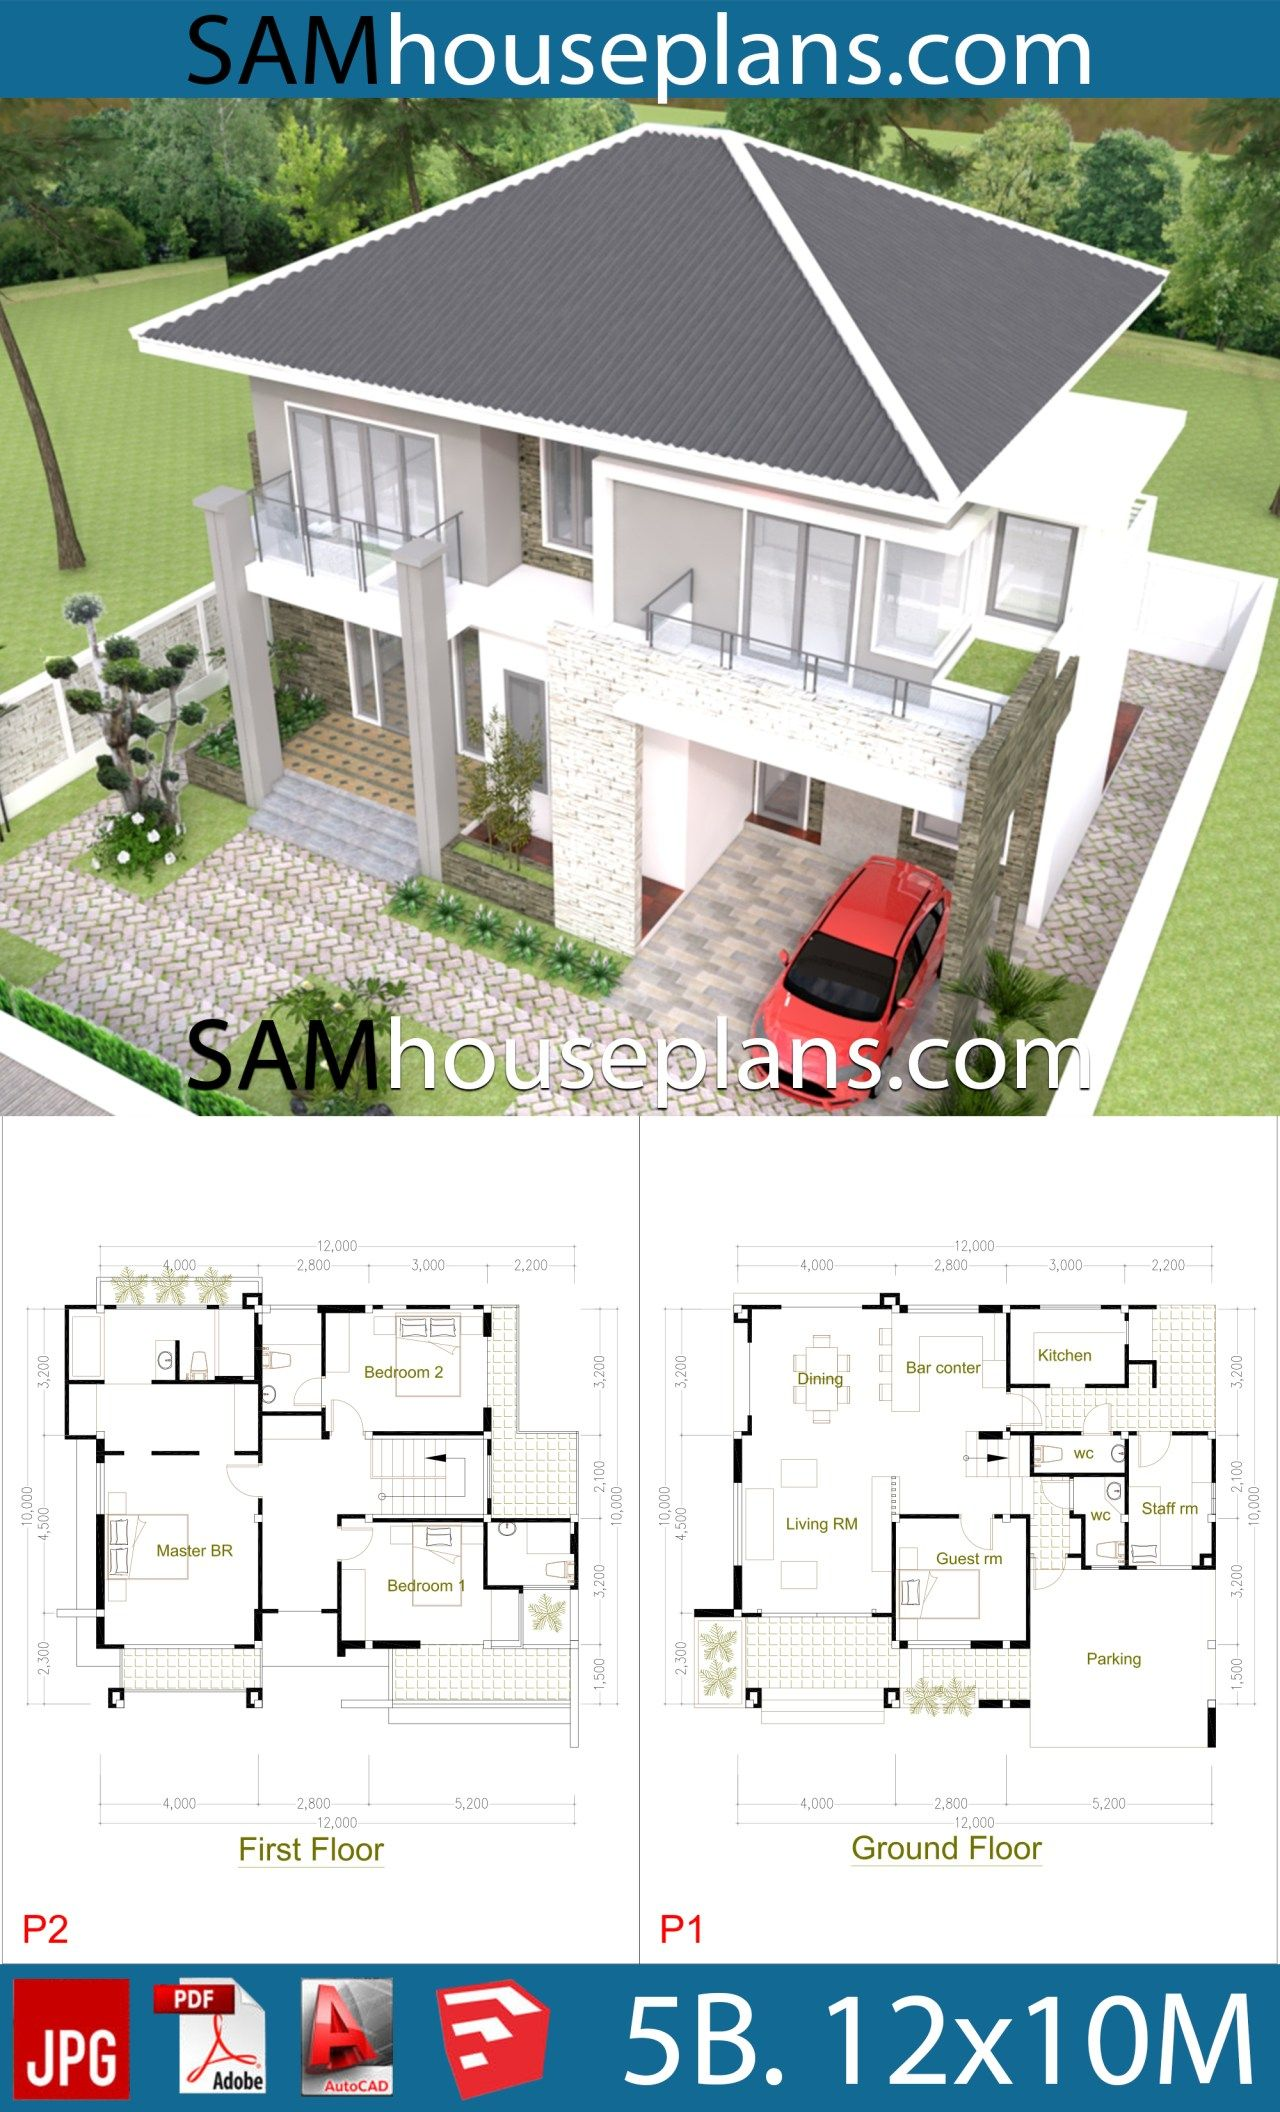 House Plans 12x10 With 5 Bedrooms Sam House Plans In 2020 Model House Plan Family House Plans Metal Building House Plans